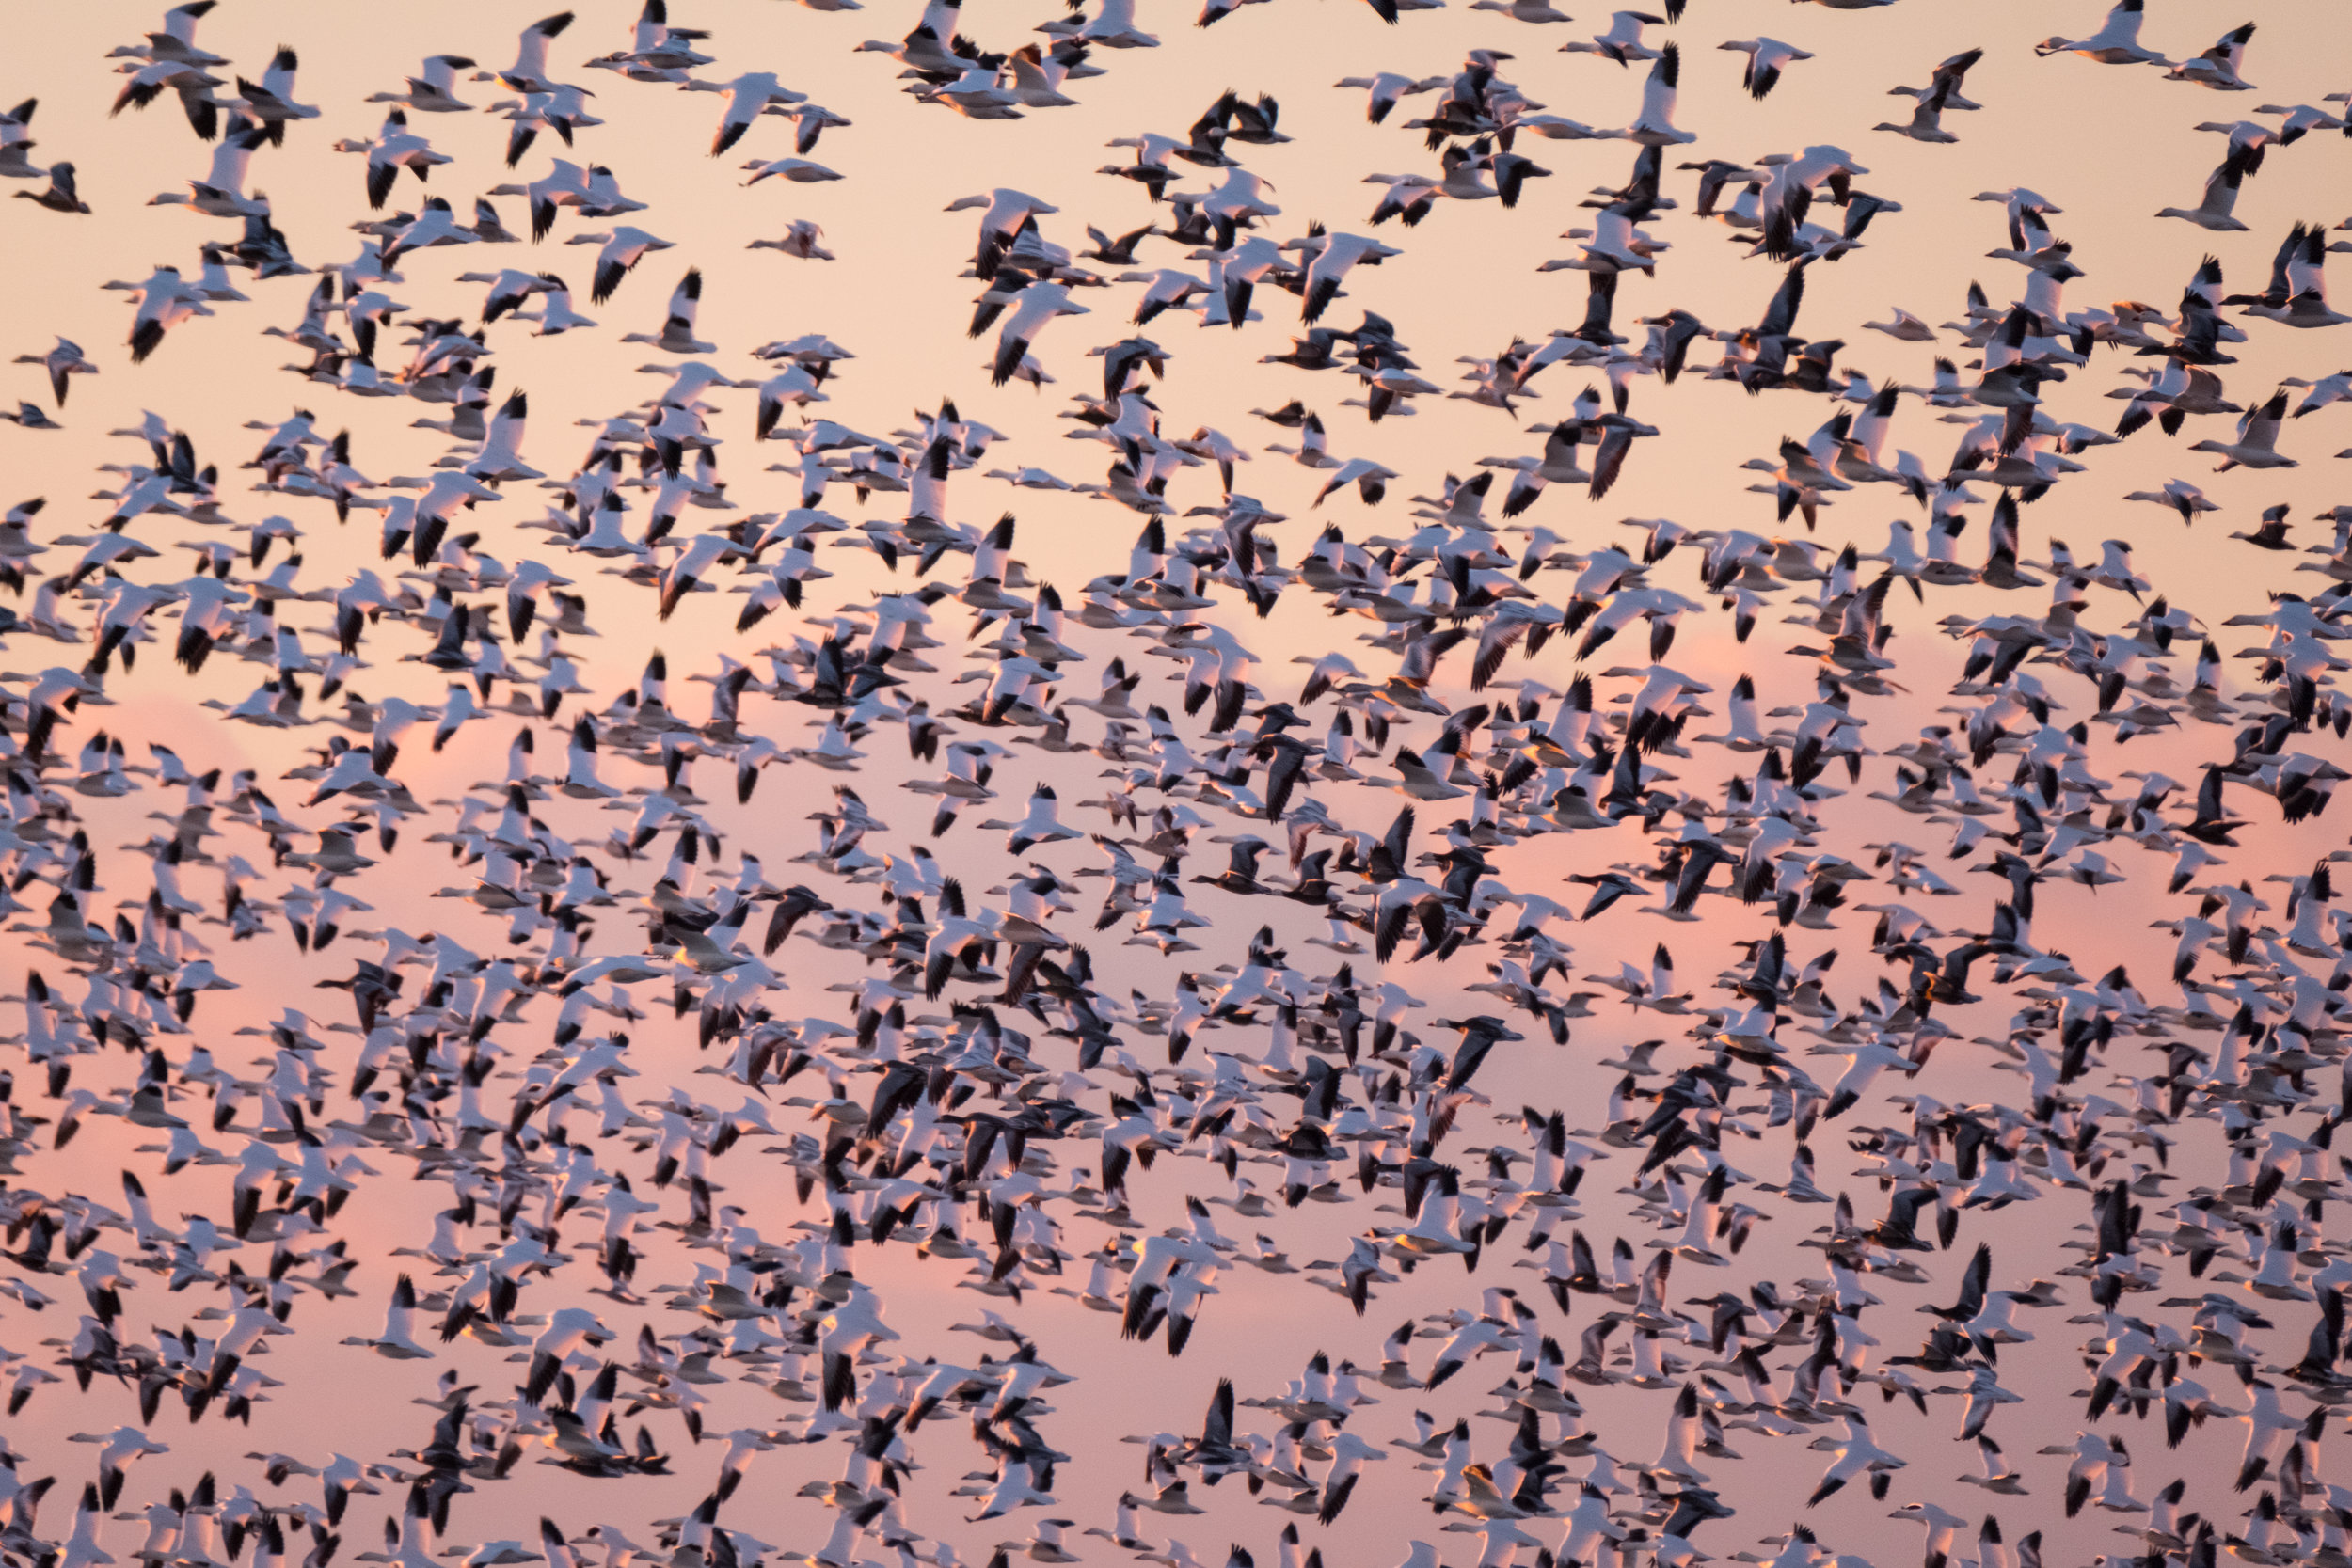 Migrating snow geese in flight at Blackwater Wildlife Refuge on Maryland's Eastern Shore. | Photo by Stefanie Payne